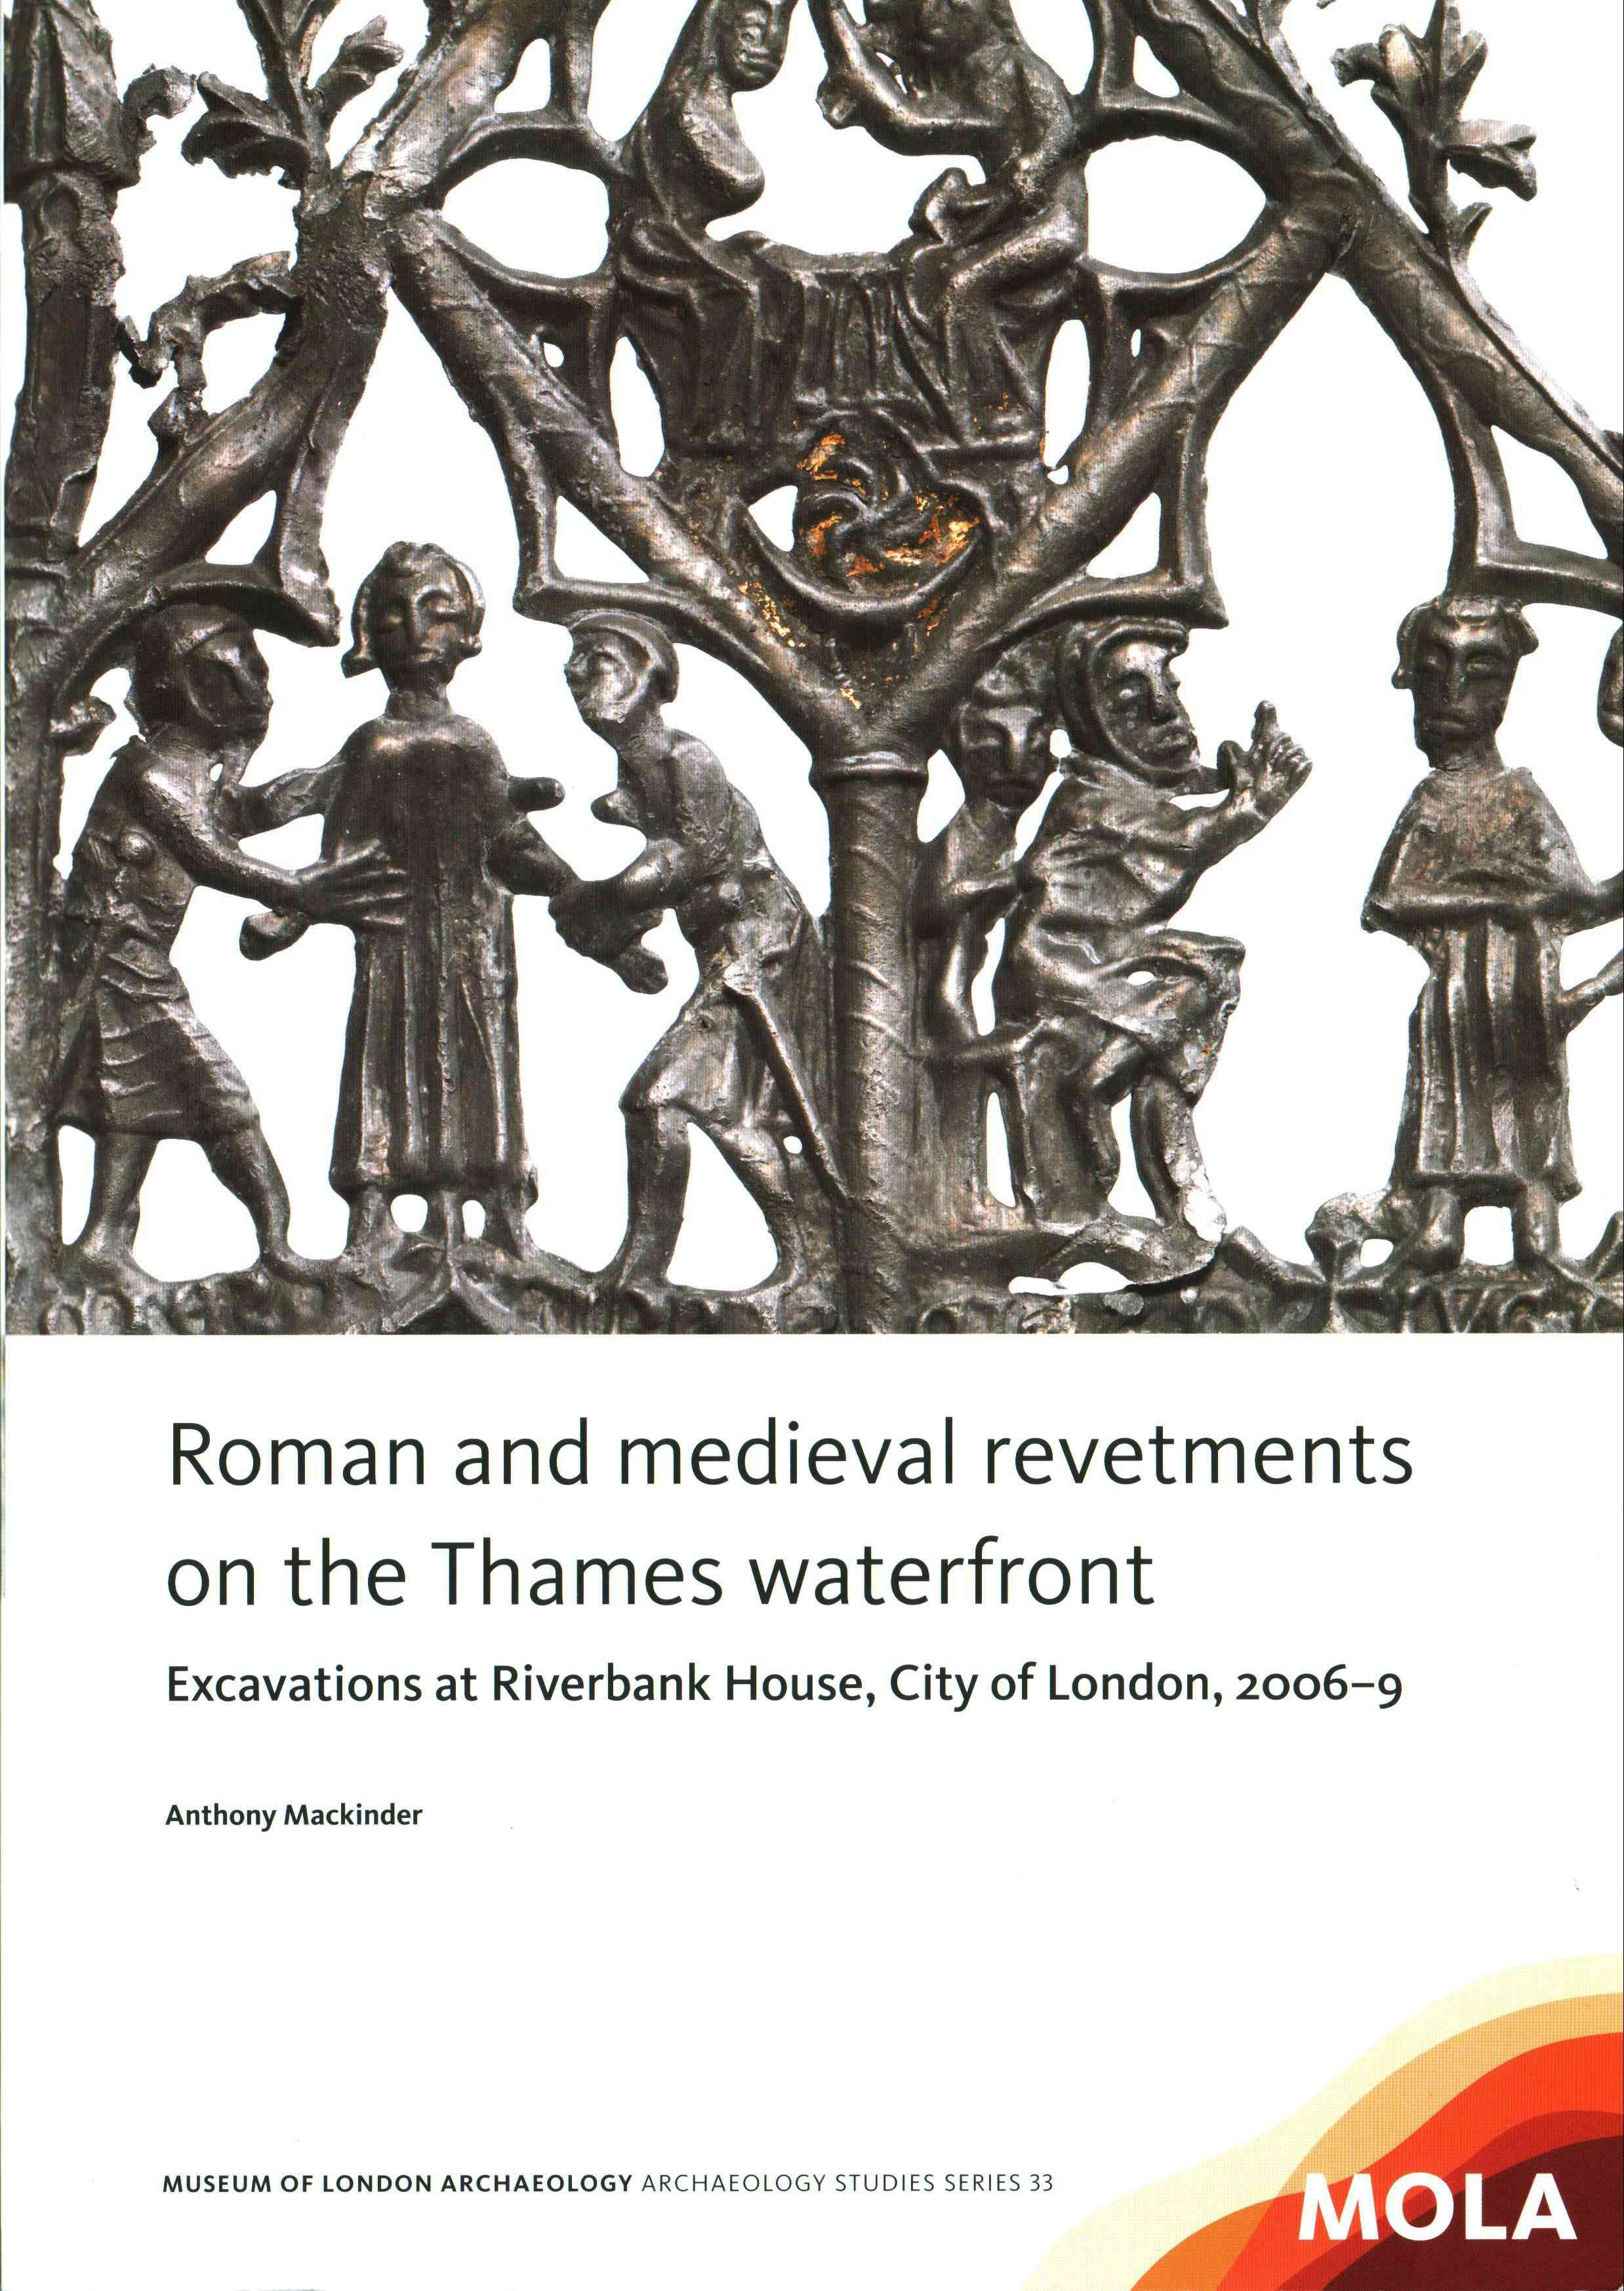 Roman and Medieval Revetments on the Thames Waterfront: Excavations at Riverbank House, City of London 2006-9